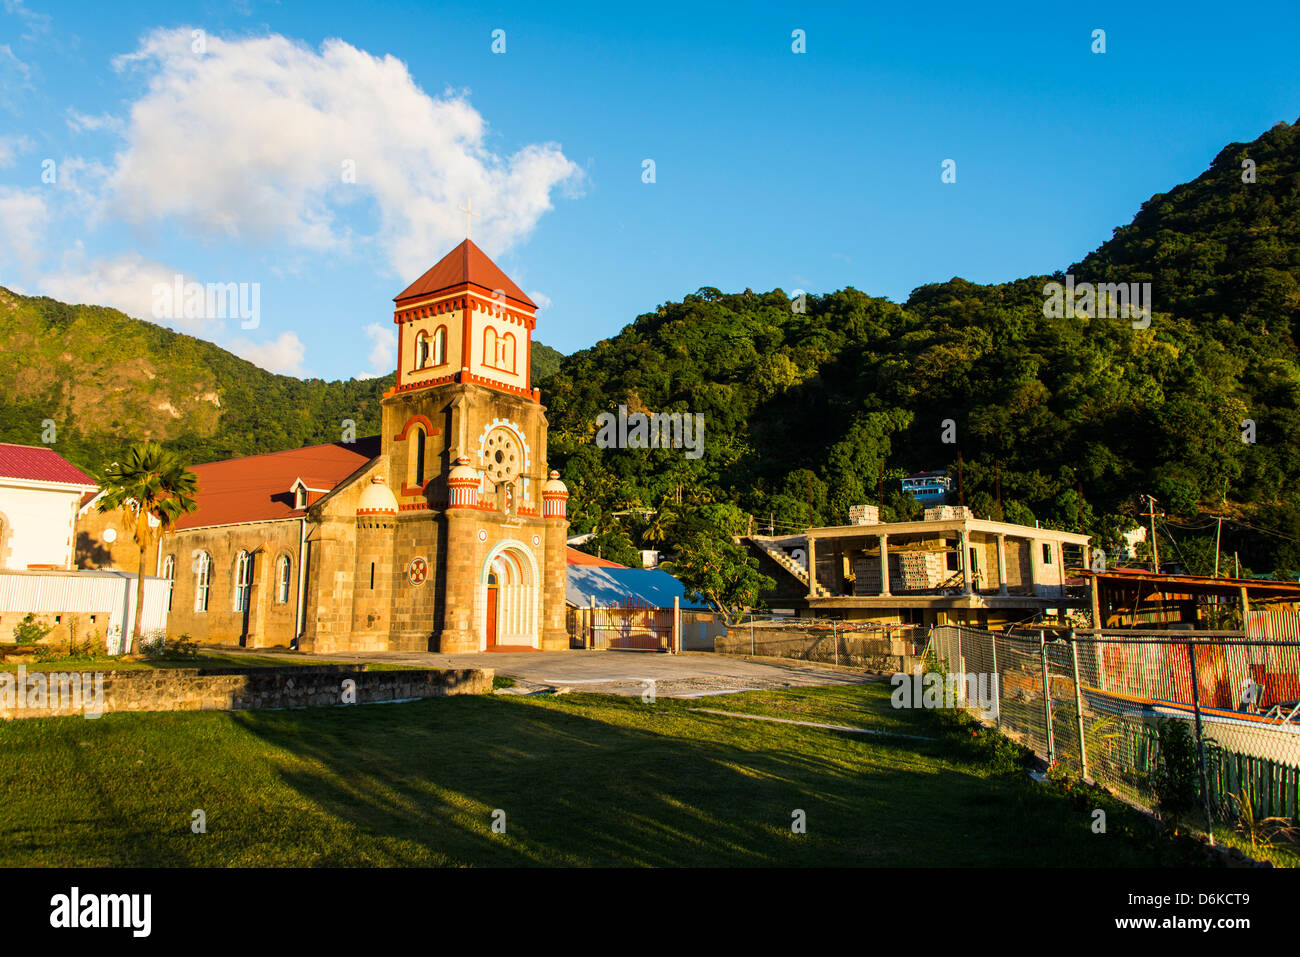 Soufriere Dominica West Indies Caribbean Stock Photos Soufriere - West indies central america 1763